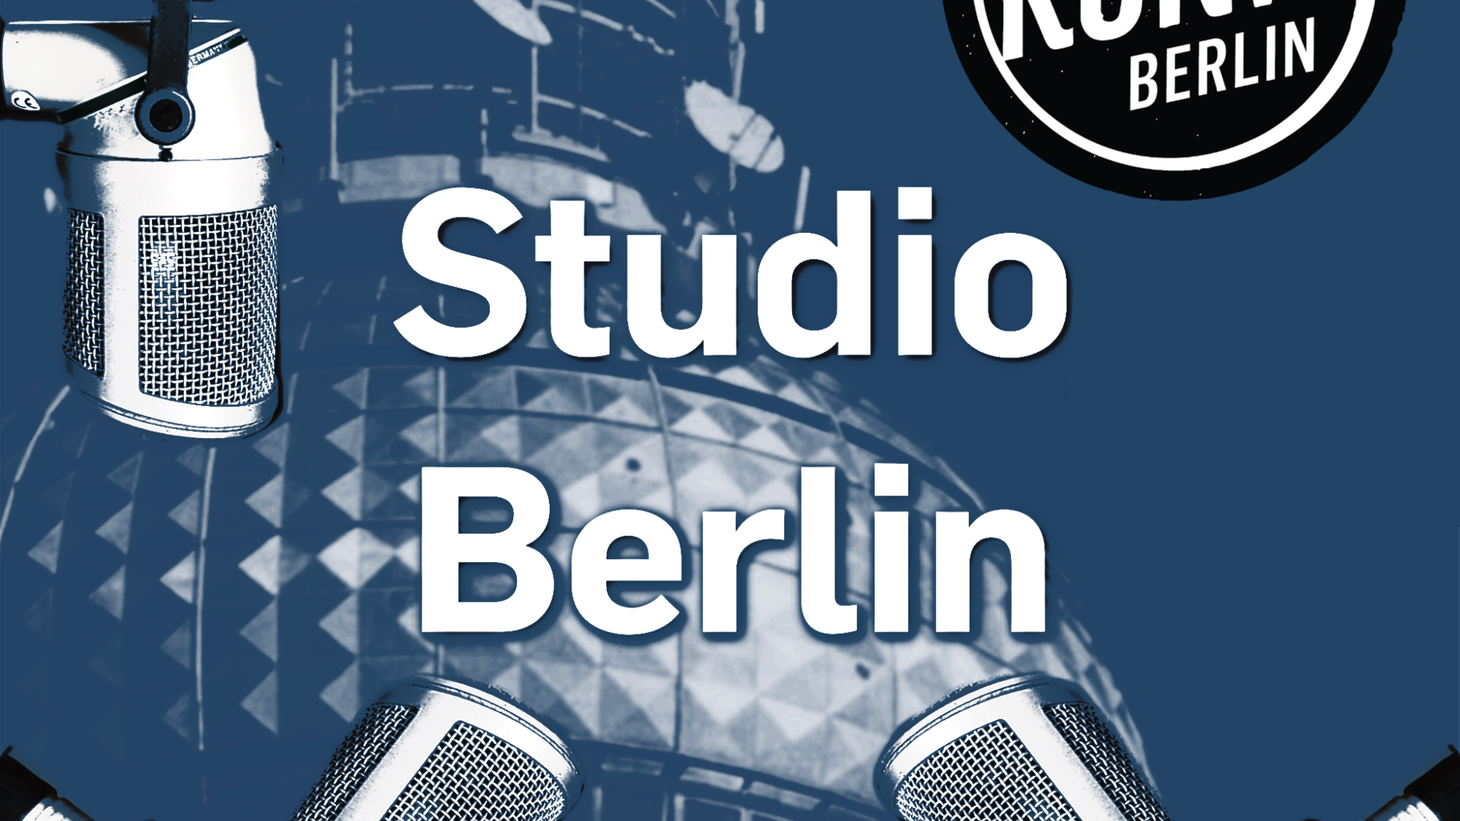 Berlin lifted more pandemic restrictions this week, but the city's clubs remain closed for the foreseeable future. What does that mean for Berlin's iconic clubbing culture and the city's reputation?